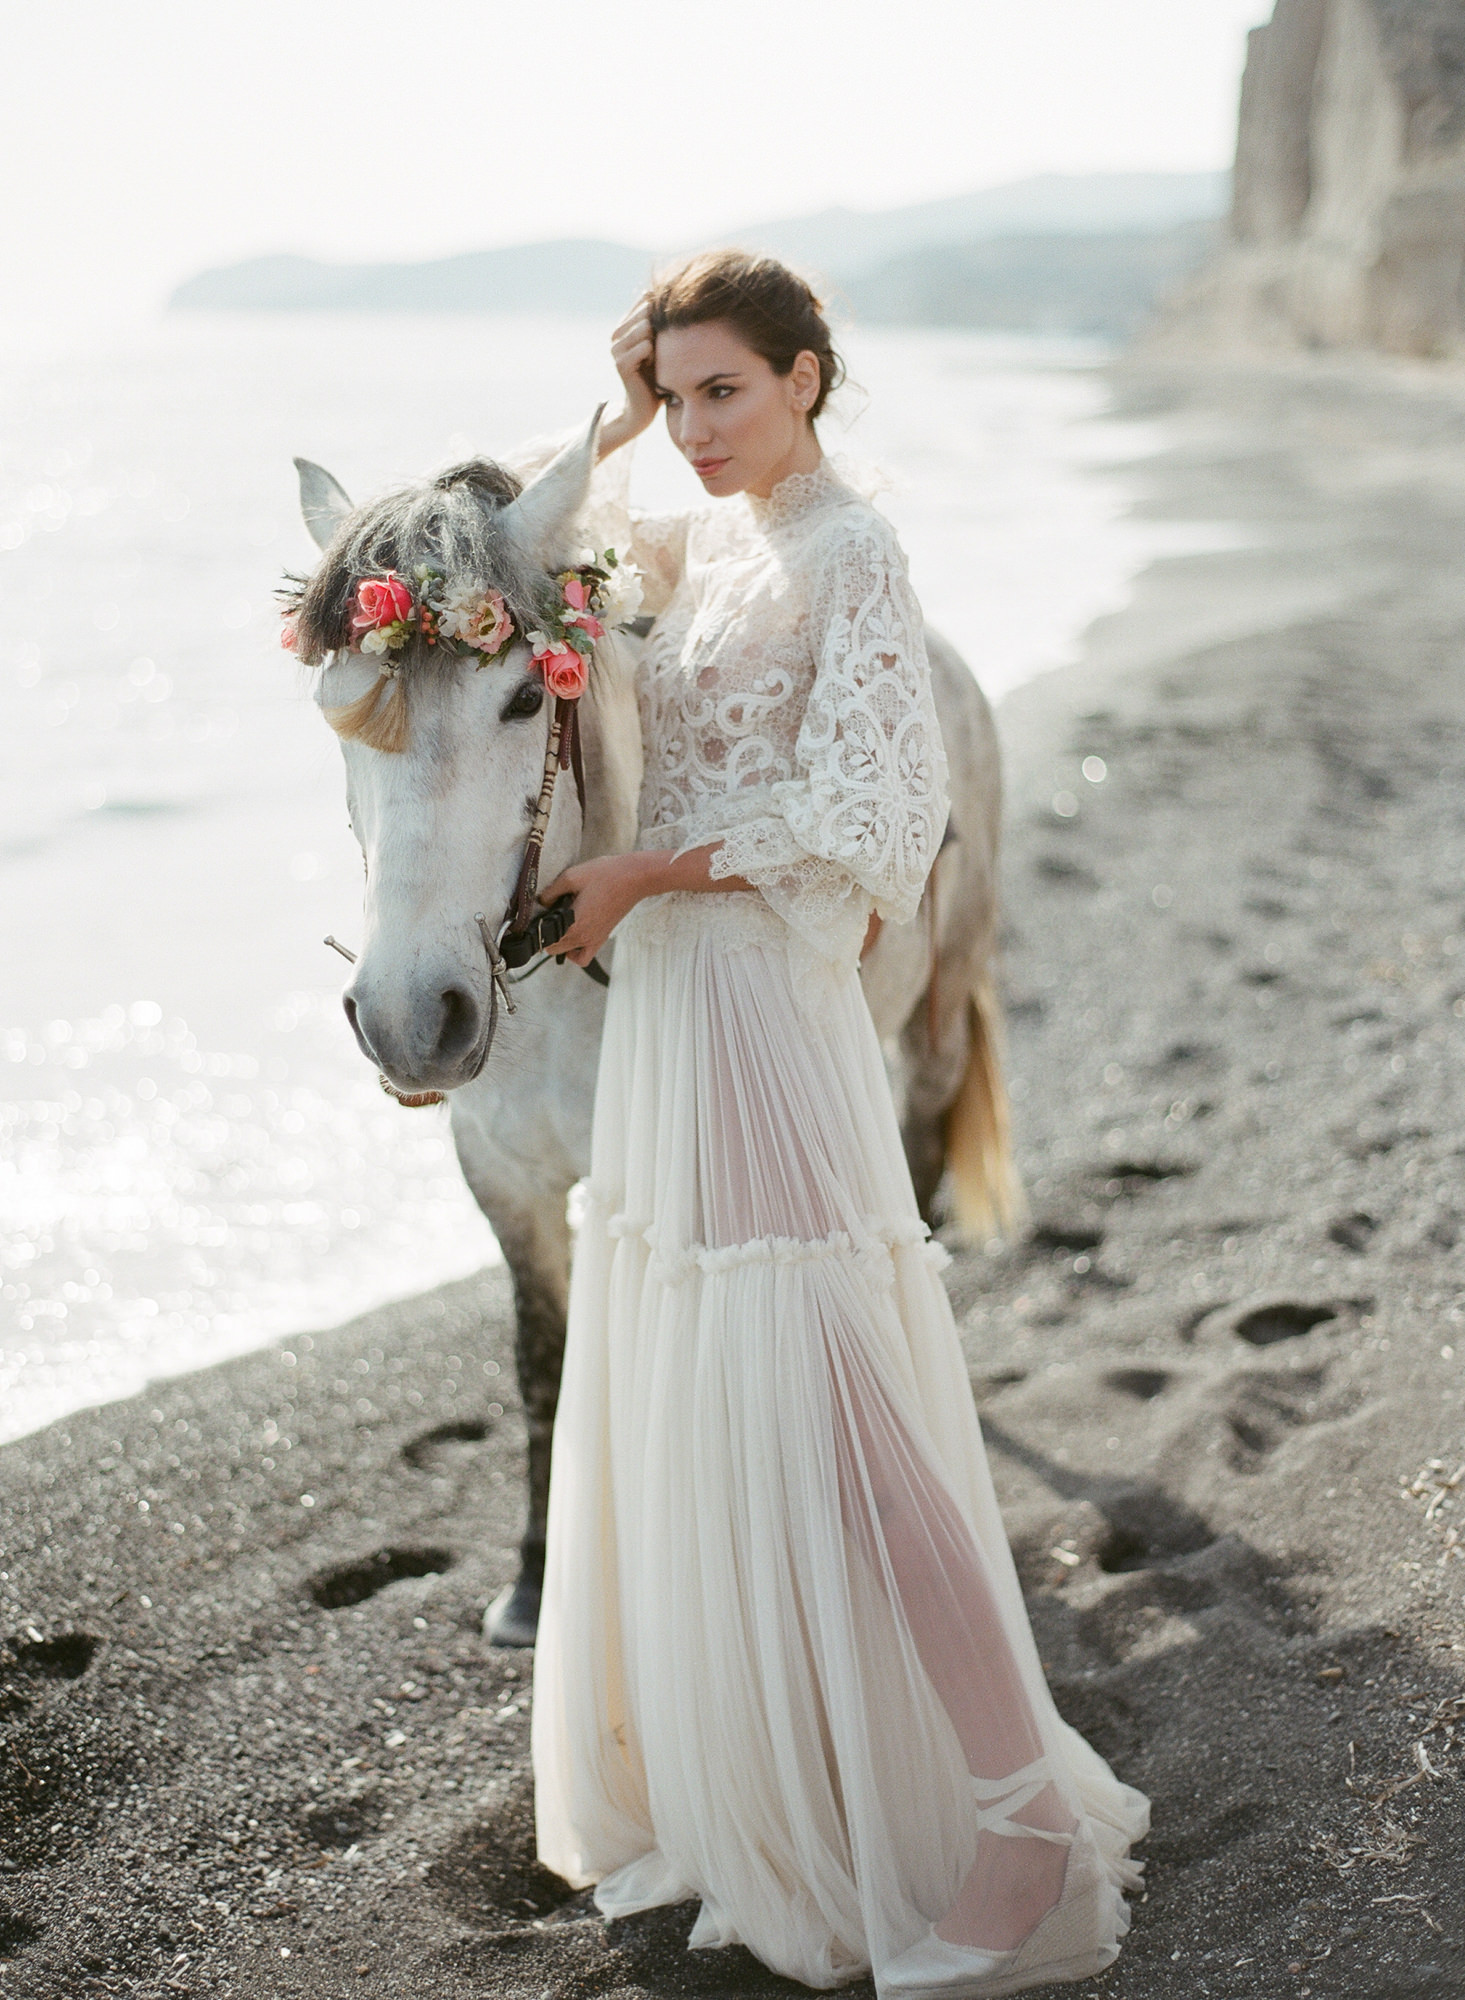 beach-bride-with-vintage-lace-high-necked-gown-with-horse-in-rose-floral-crown-worlds-best-wedding-photos-gianluca-adiovaso-italy-wedding-photographers